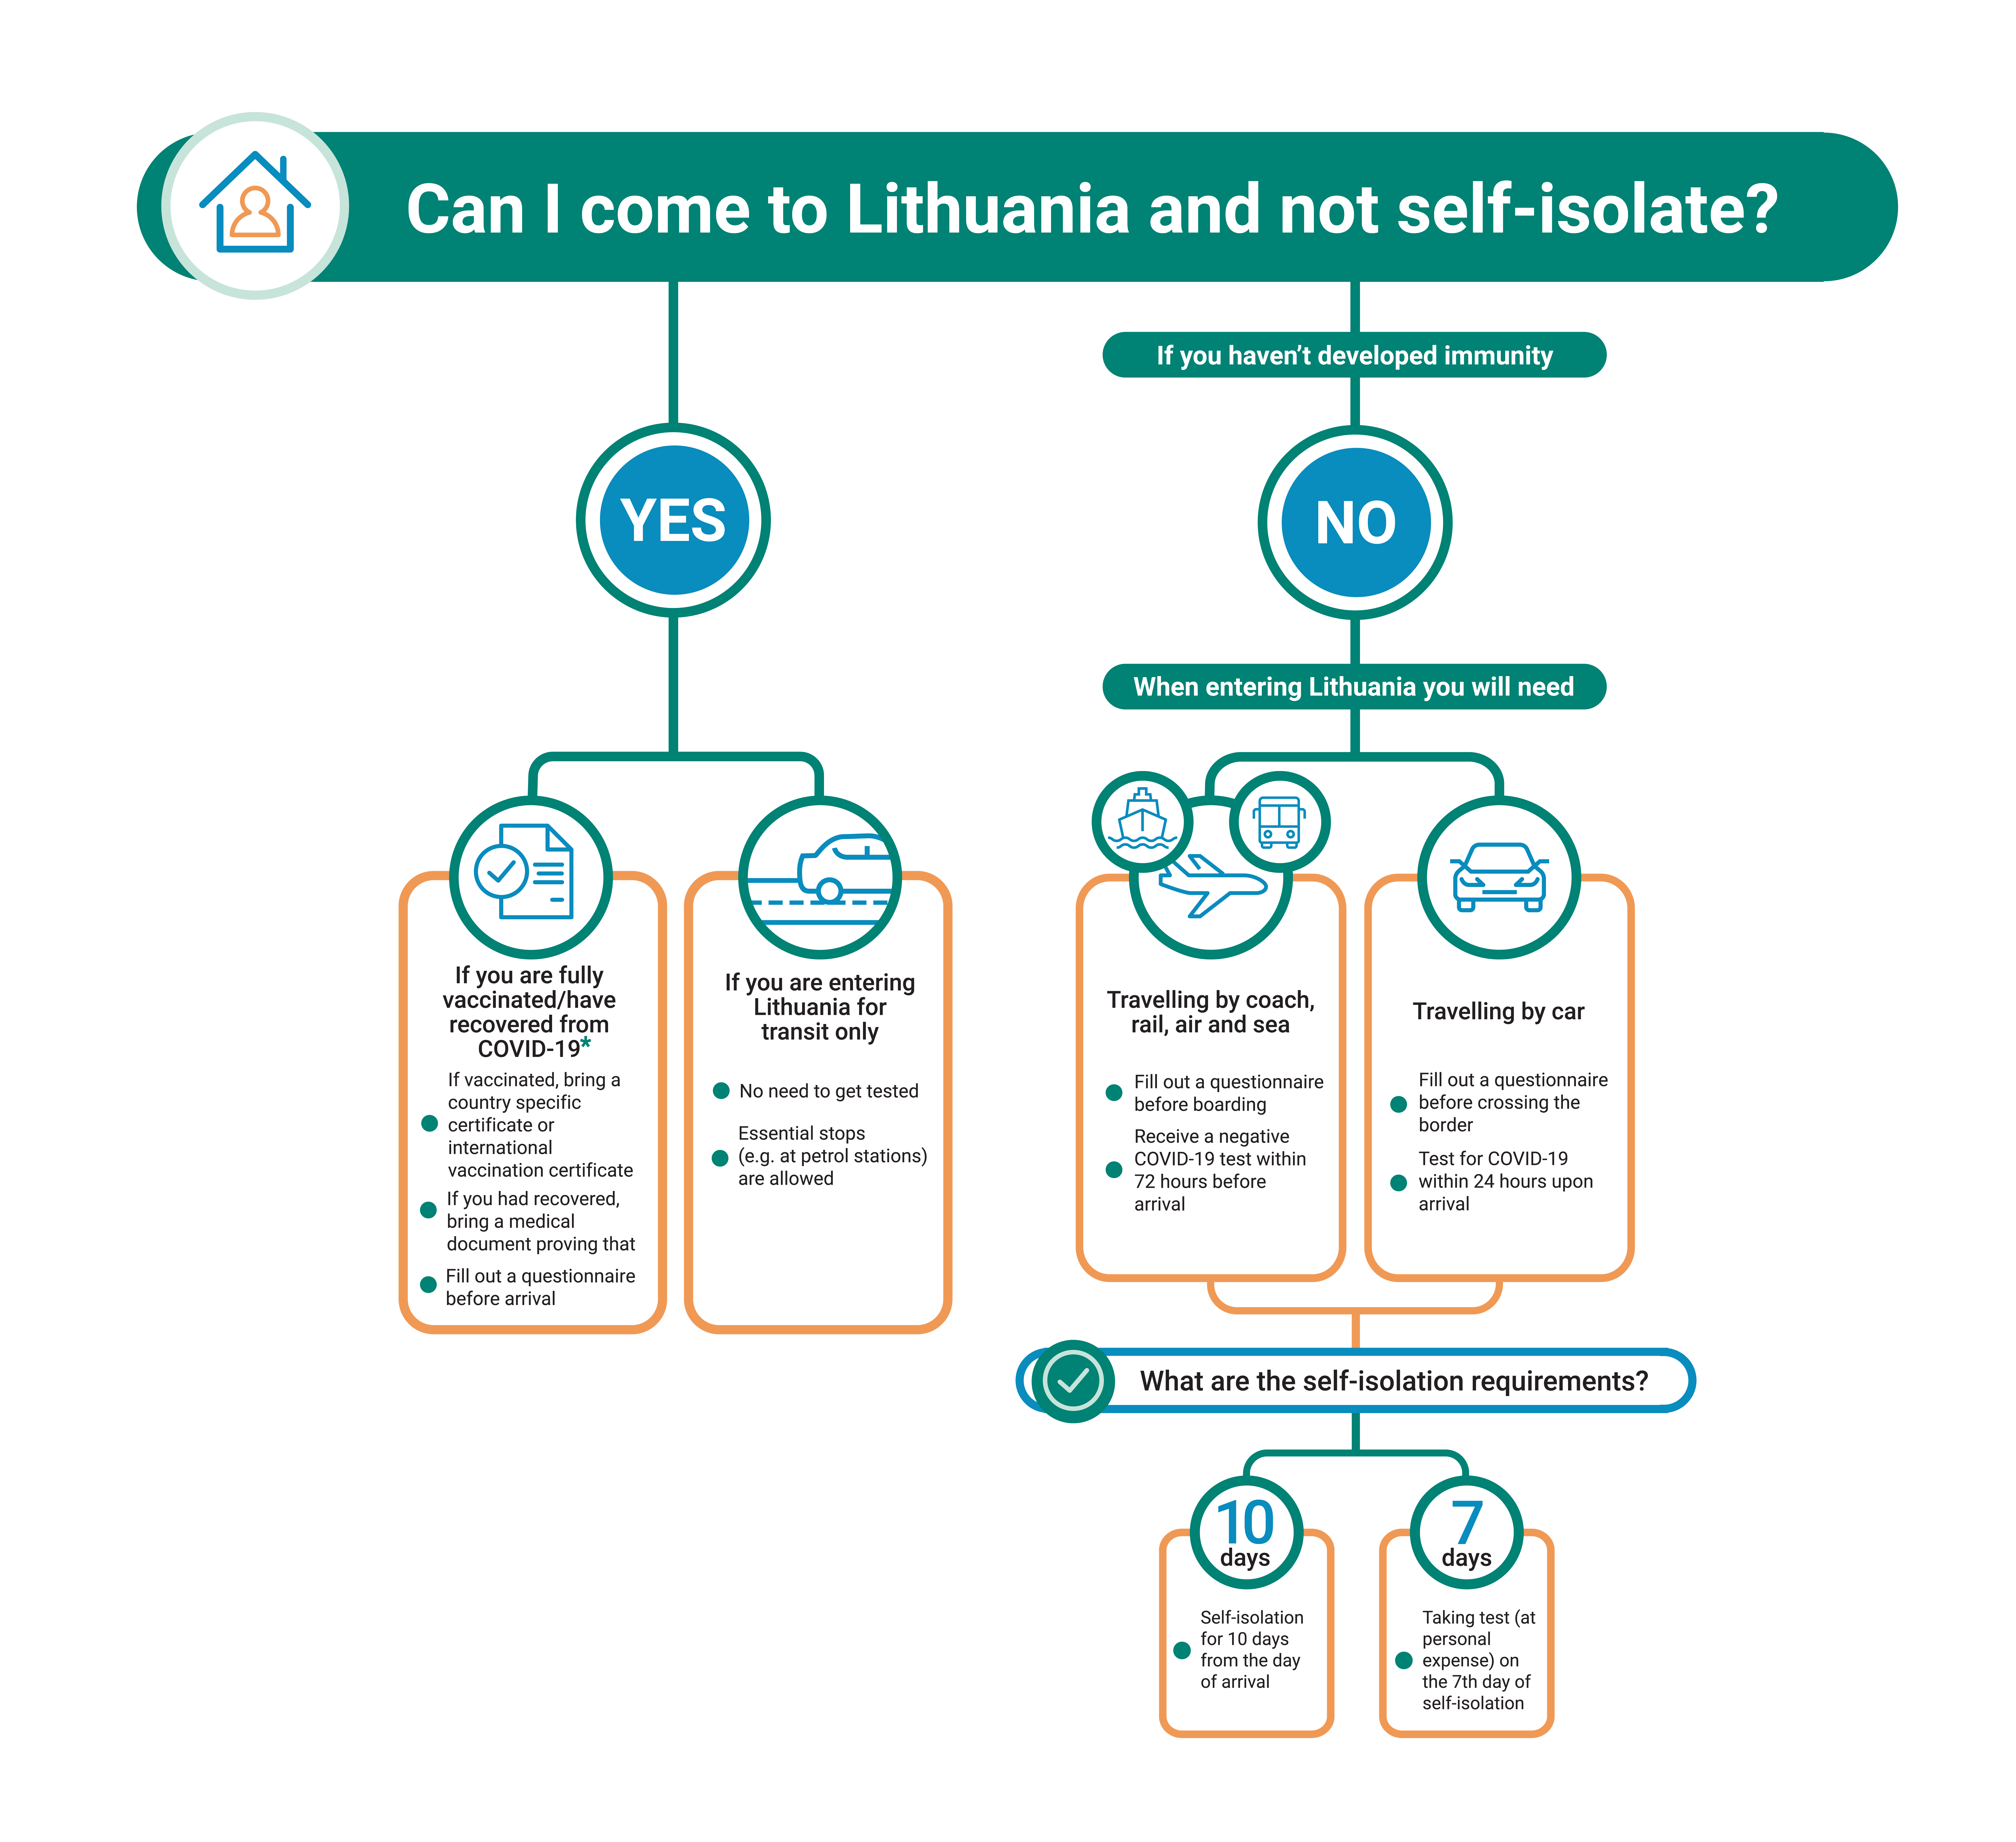 This section answers questions related to COVID-19 in Lithuania and rules regarding quarantine and testing after arrival. It covers isolation exemptions in Lithuania for COVID-19 vaccinated and recovered tourists, procedures for transiting through Lithuania as well as arriving by car, bus, plane or sea transport.